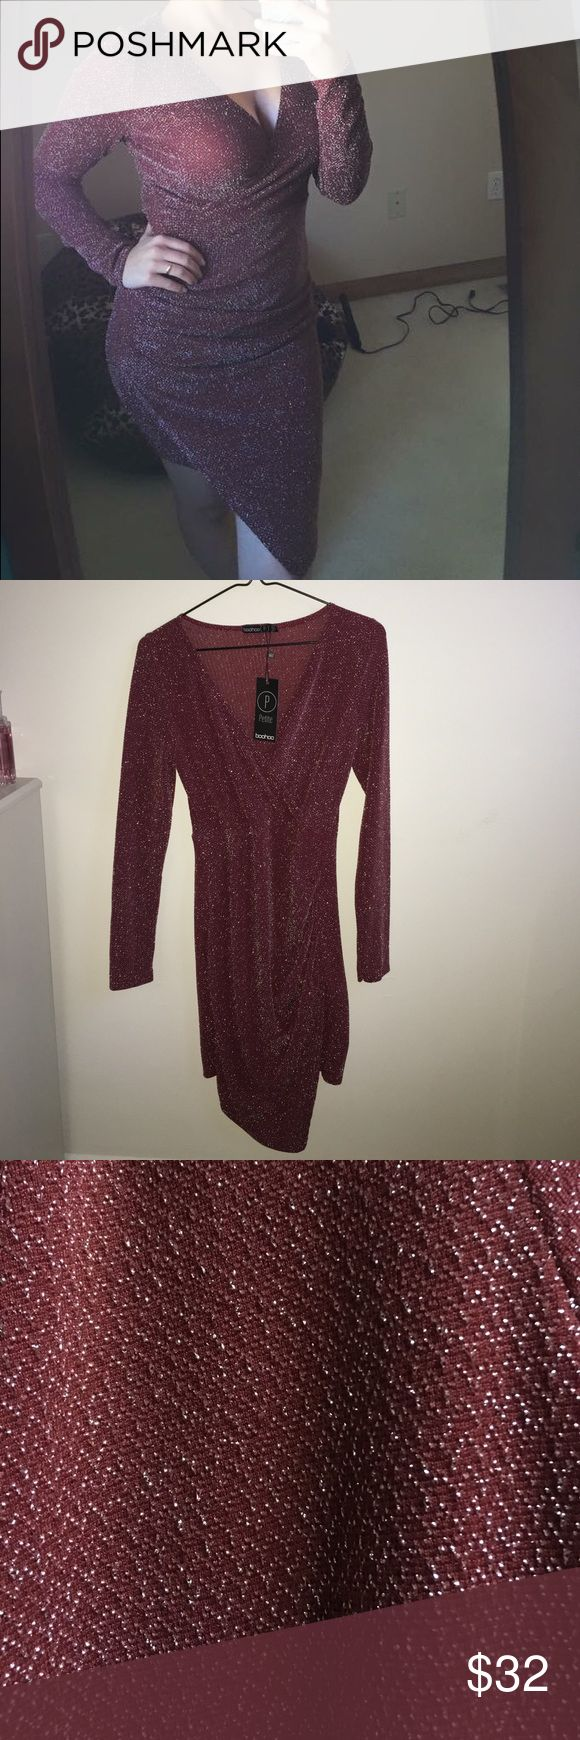 Night Out Dress The perfect night out dress that will have you looking sexy and lets you be comfortable at the same time. Long Sleeve. NEVER WORN. Knee Length. Boohoo Petite Dresses Long Sleeve